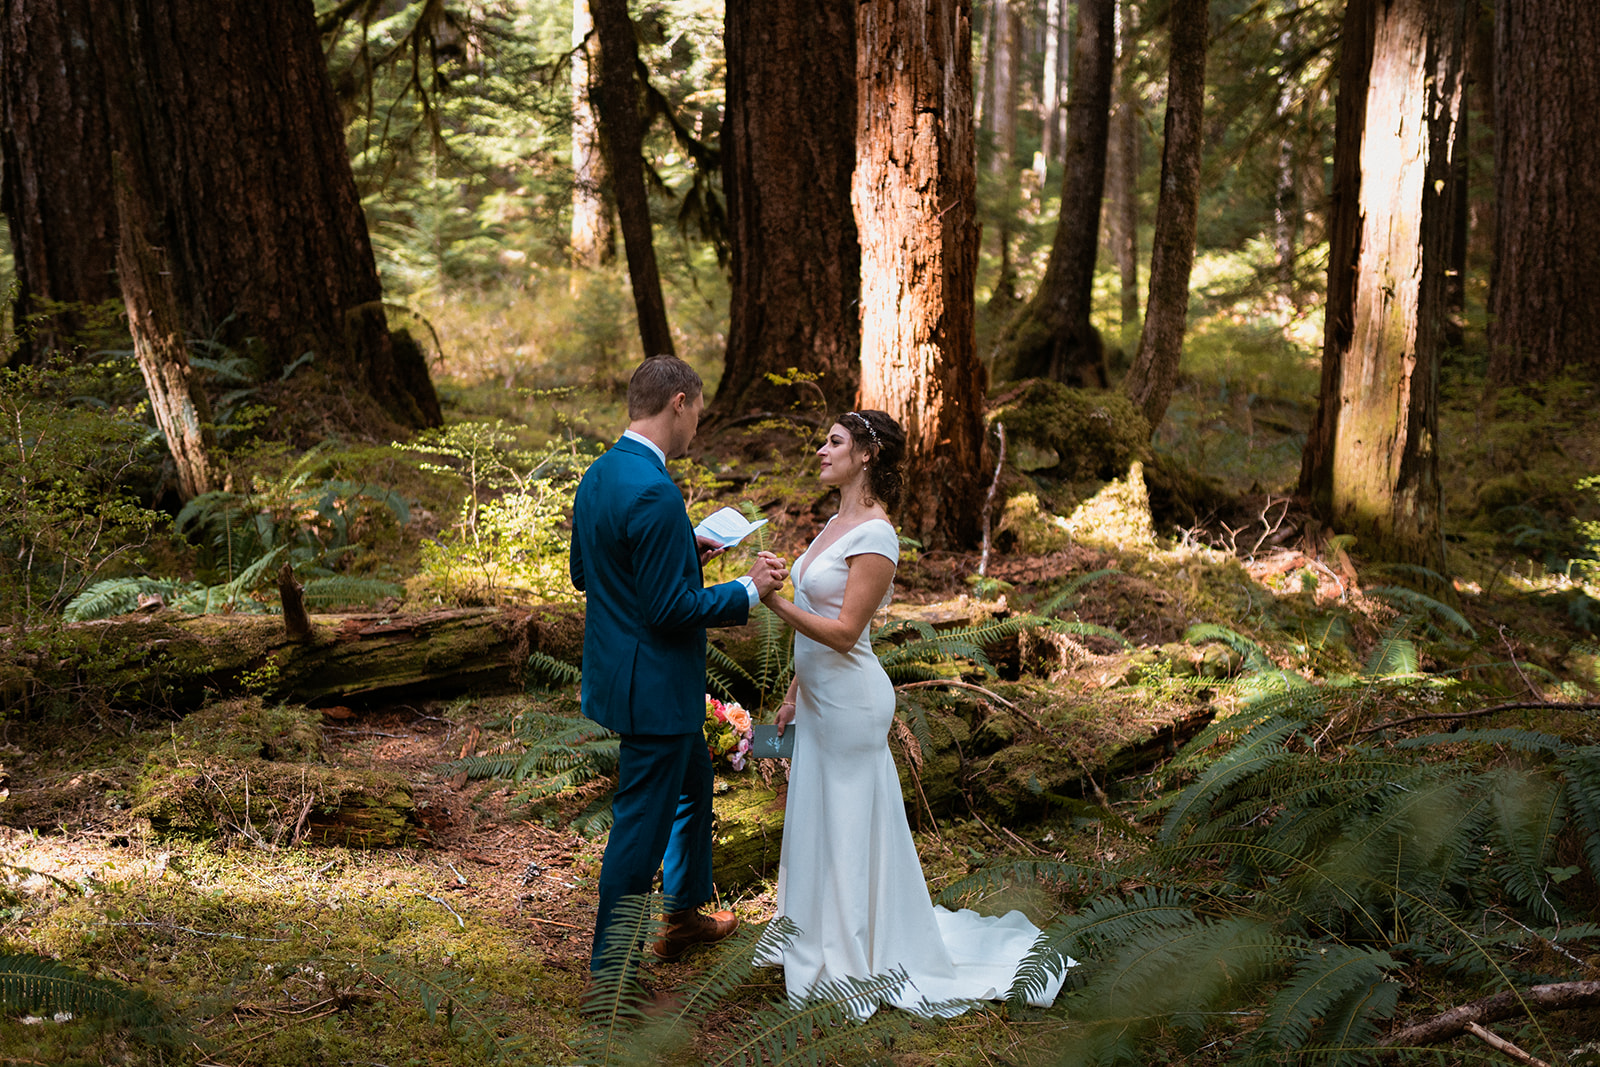 groom reading vows in forest